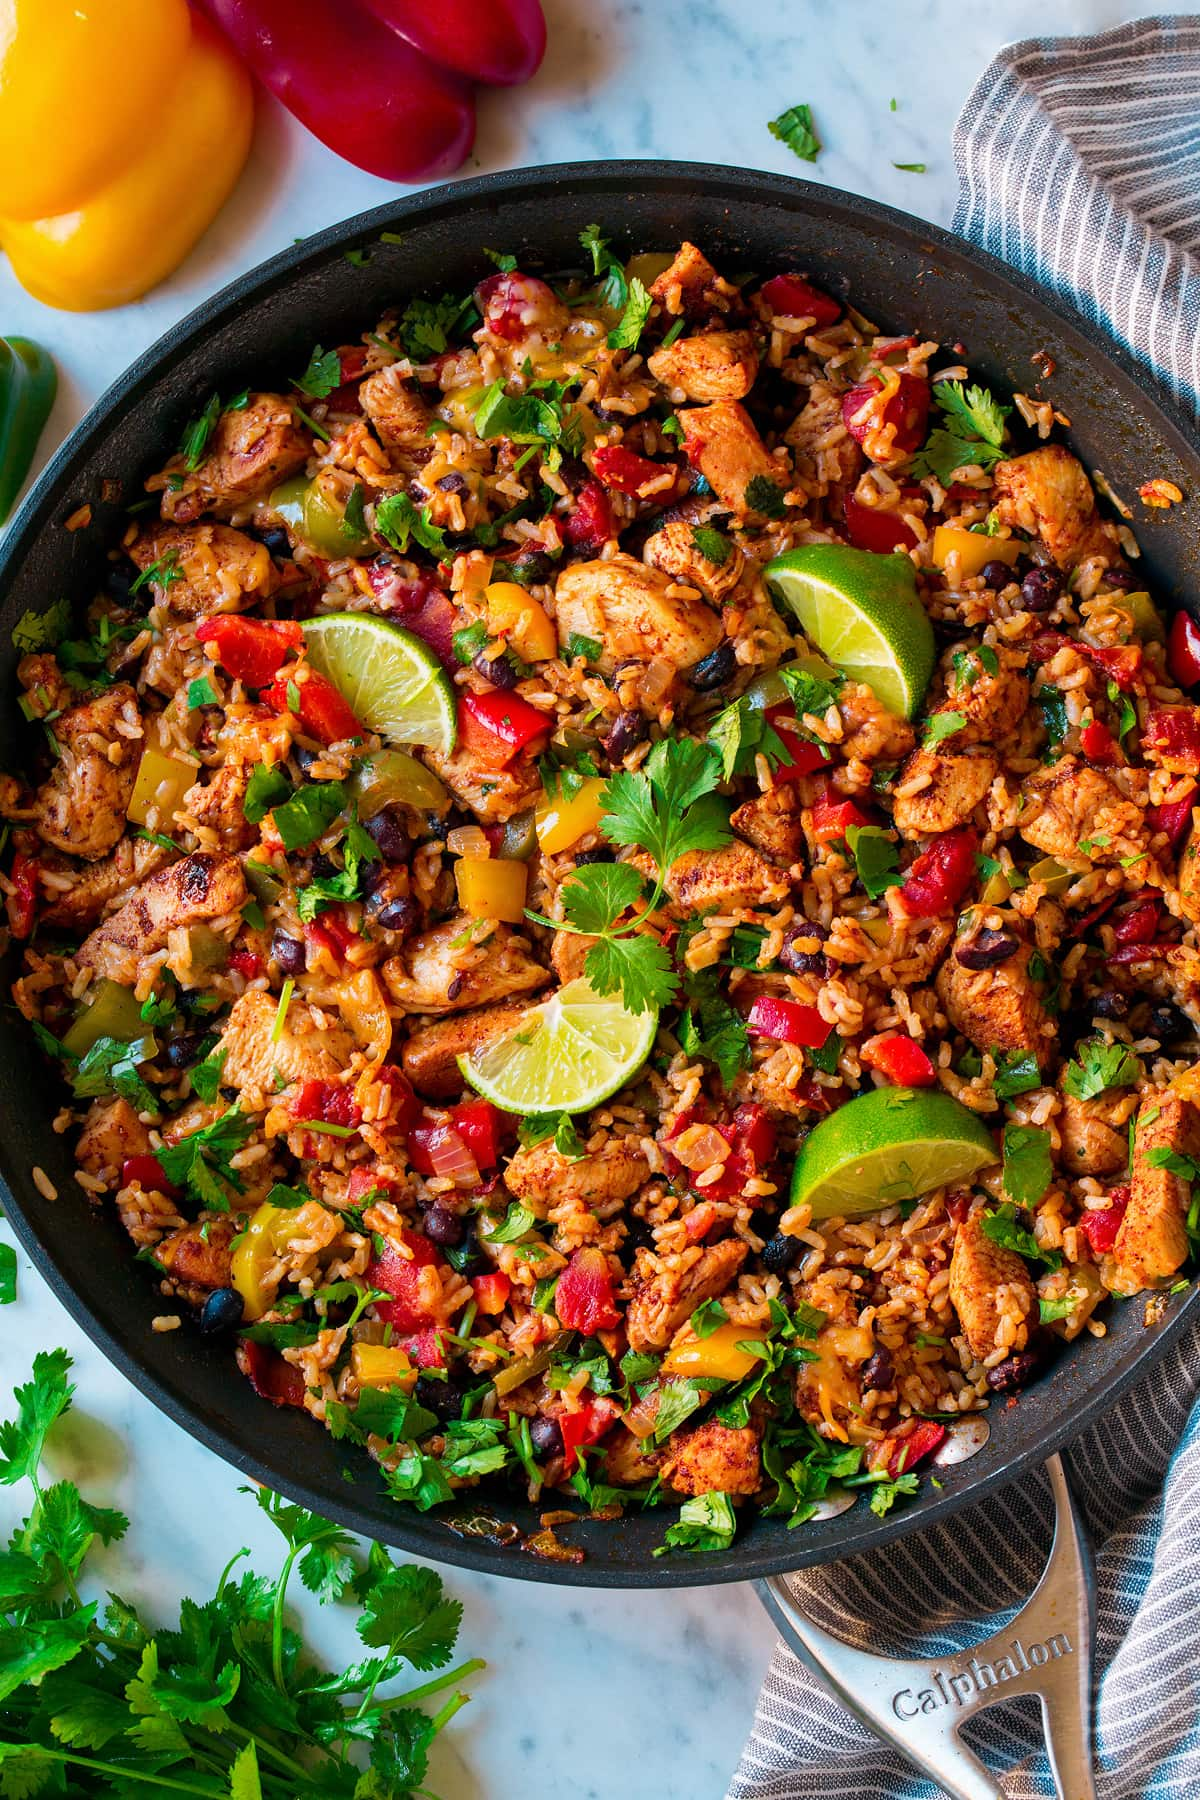 Chicken Fajita Rice Bowl shown after cooking in one pan. It includes brown rice, chicken, black beans and bell peppers.